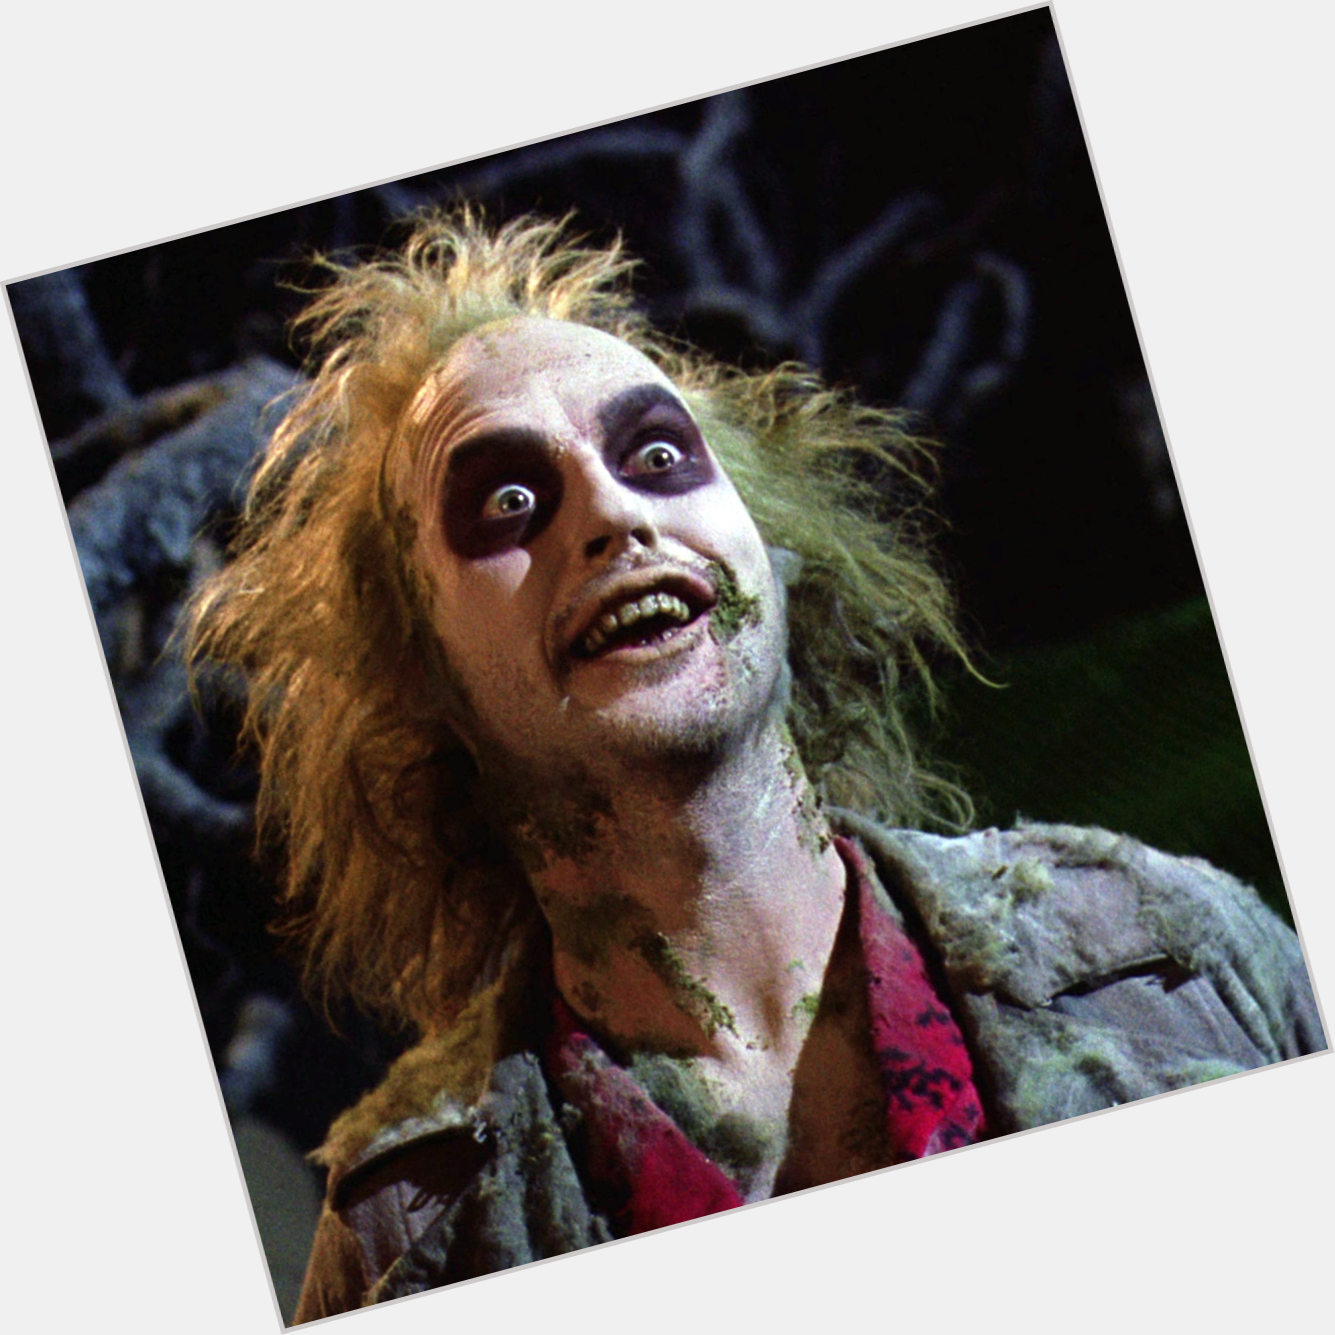 beetlejuice official site for man crush monday mcm